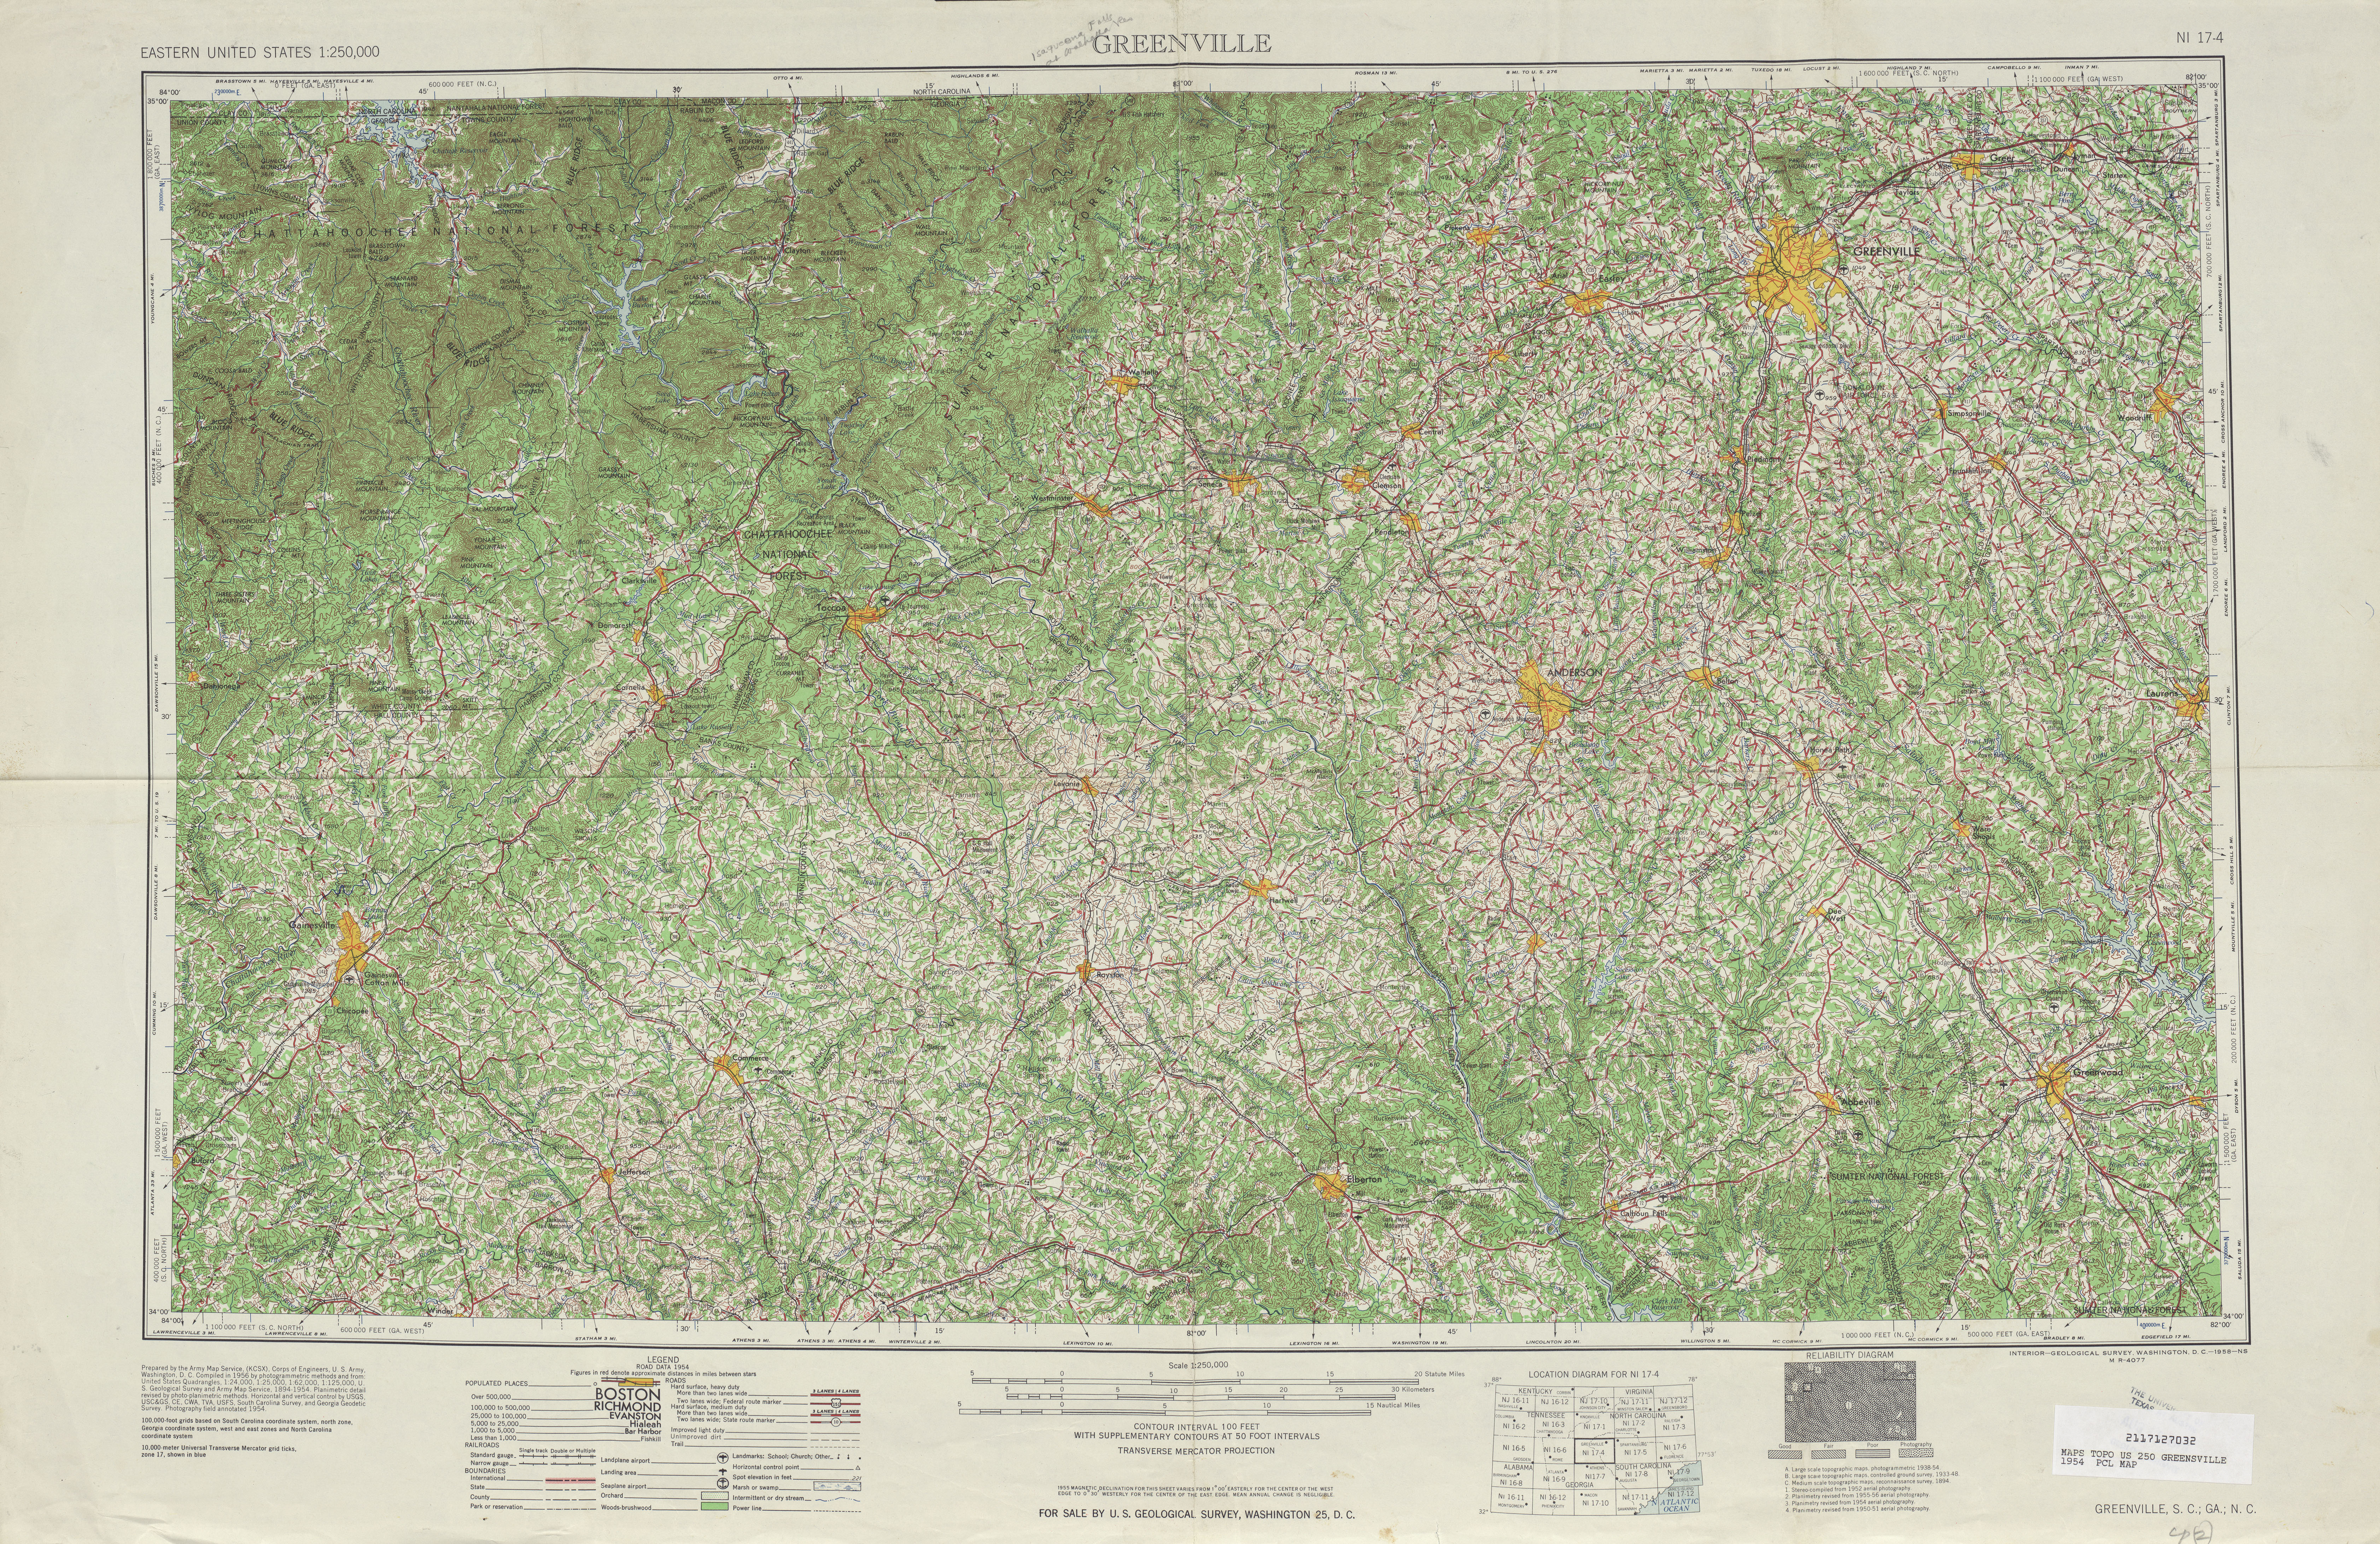 Greenville Topographic Map Sheet, United States 1954